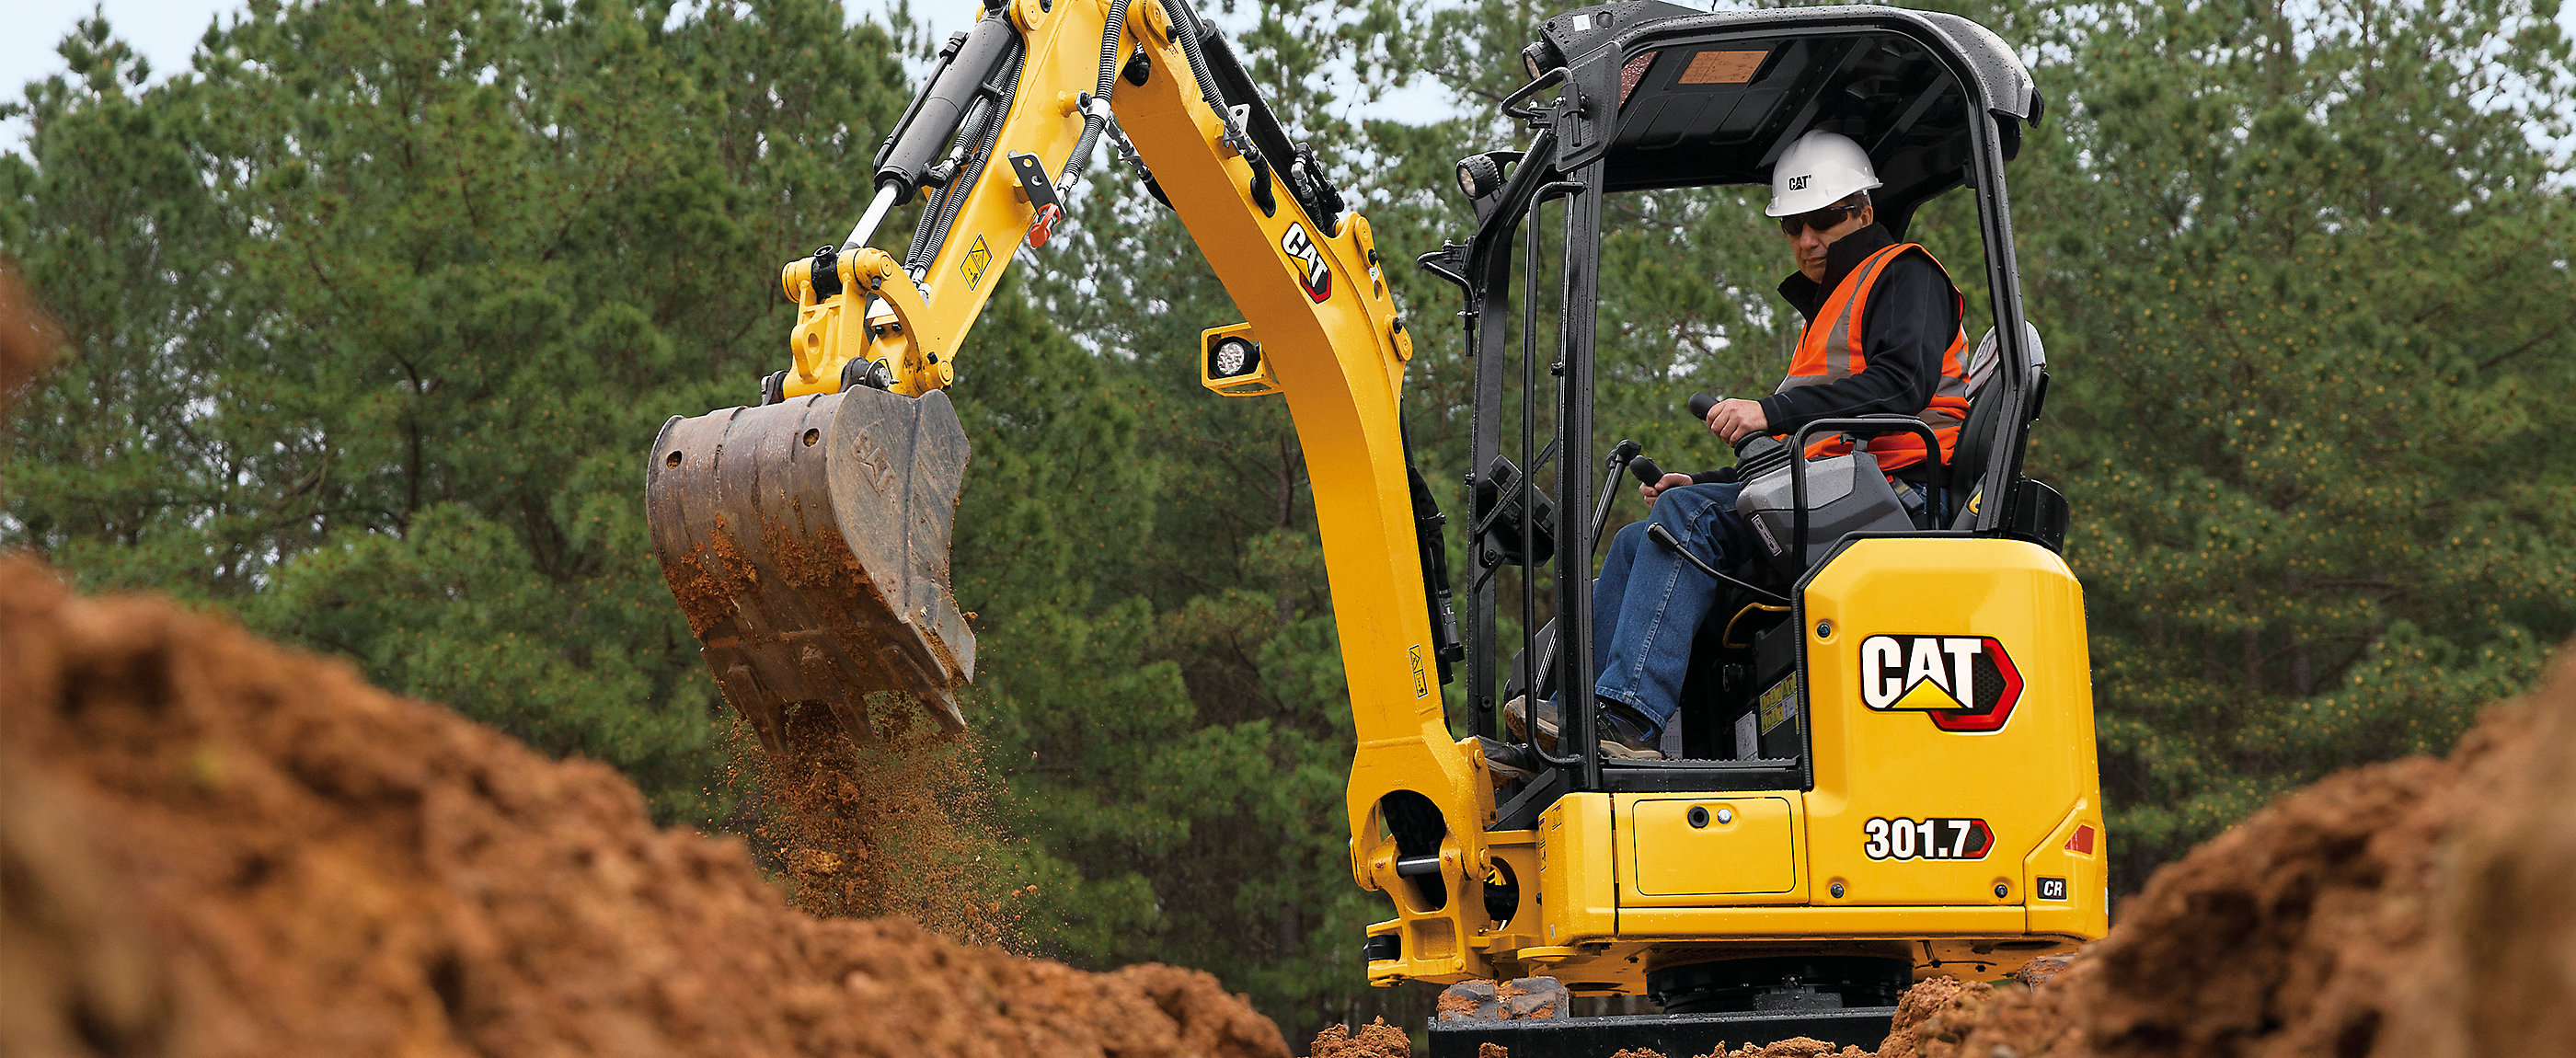 Next gen excavators offer improved efficiency and safety enhancements.